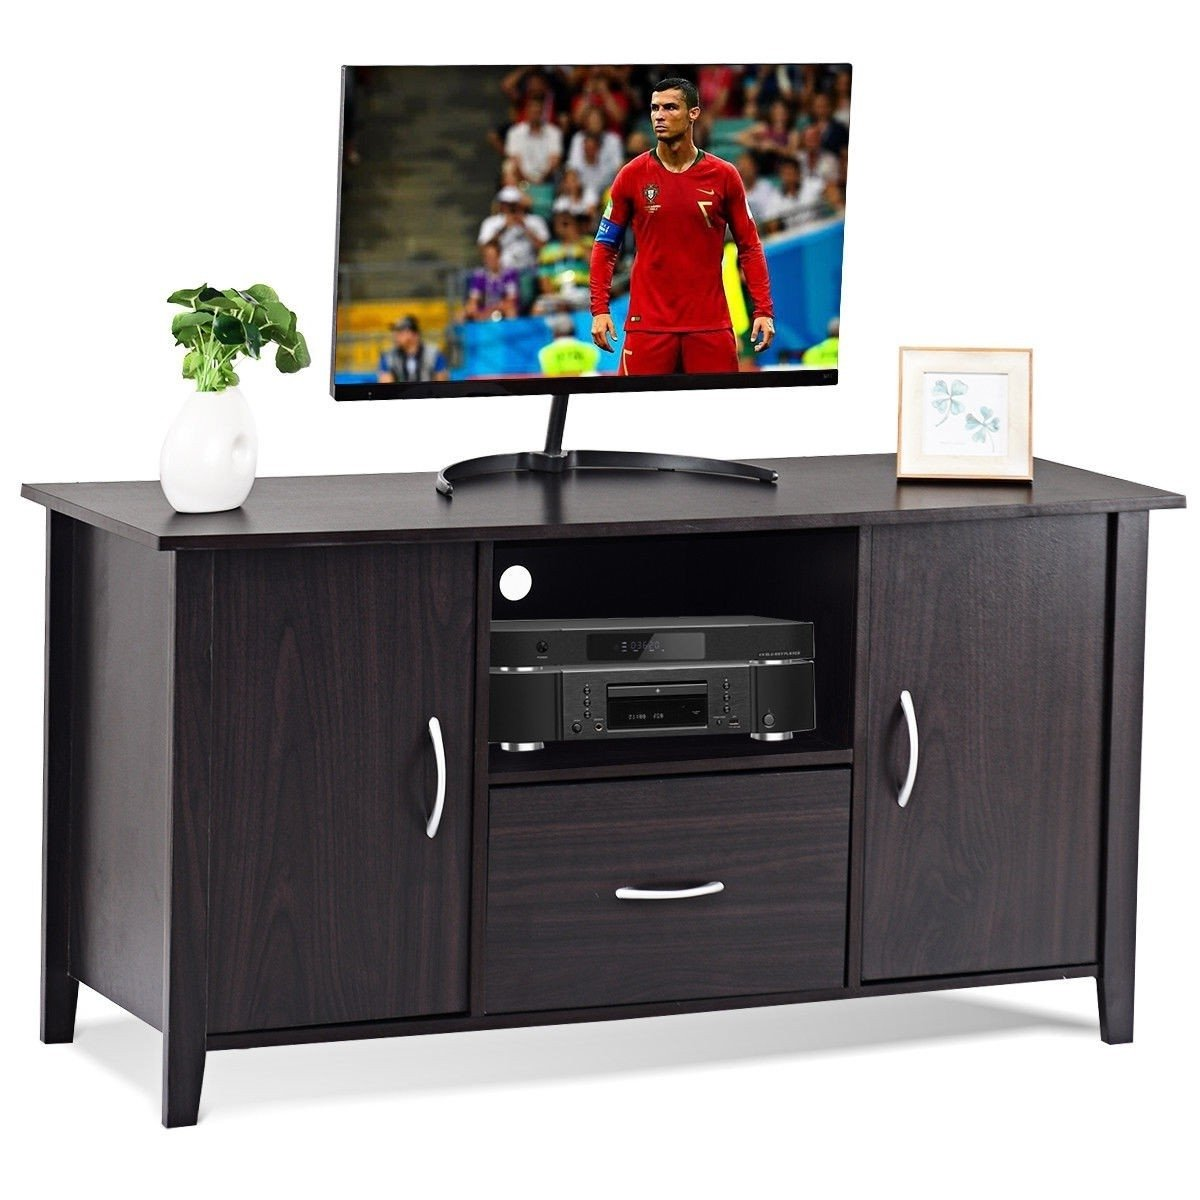 Modern 48-inch Dark Brown Wood TV Stand Media Cabinet